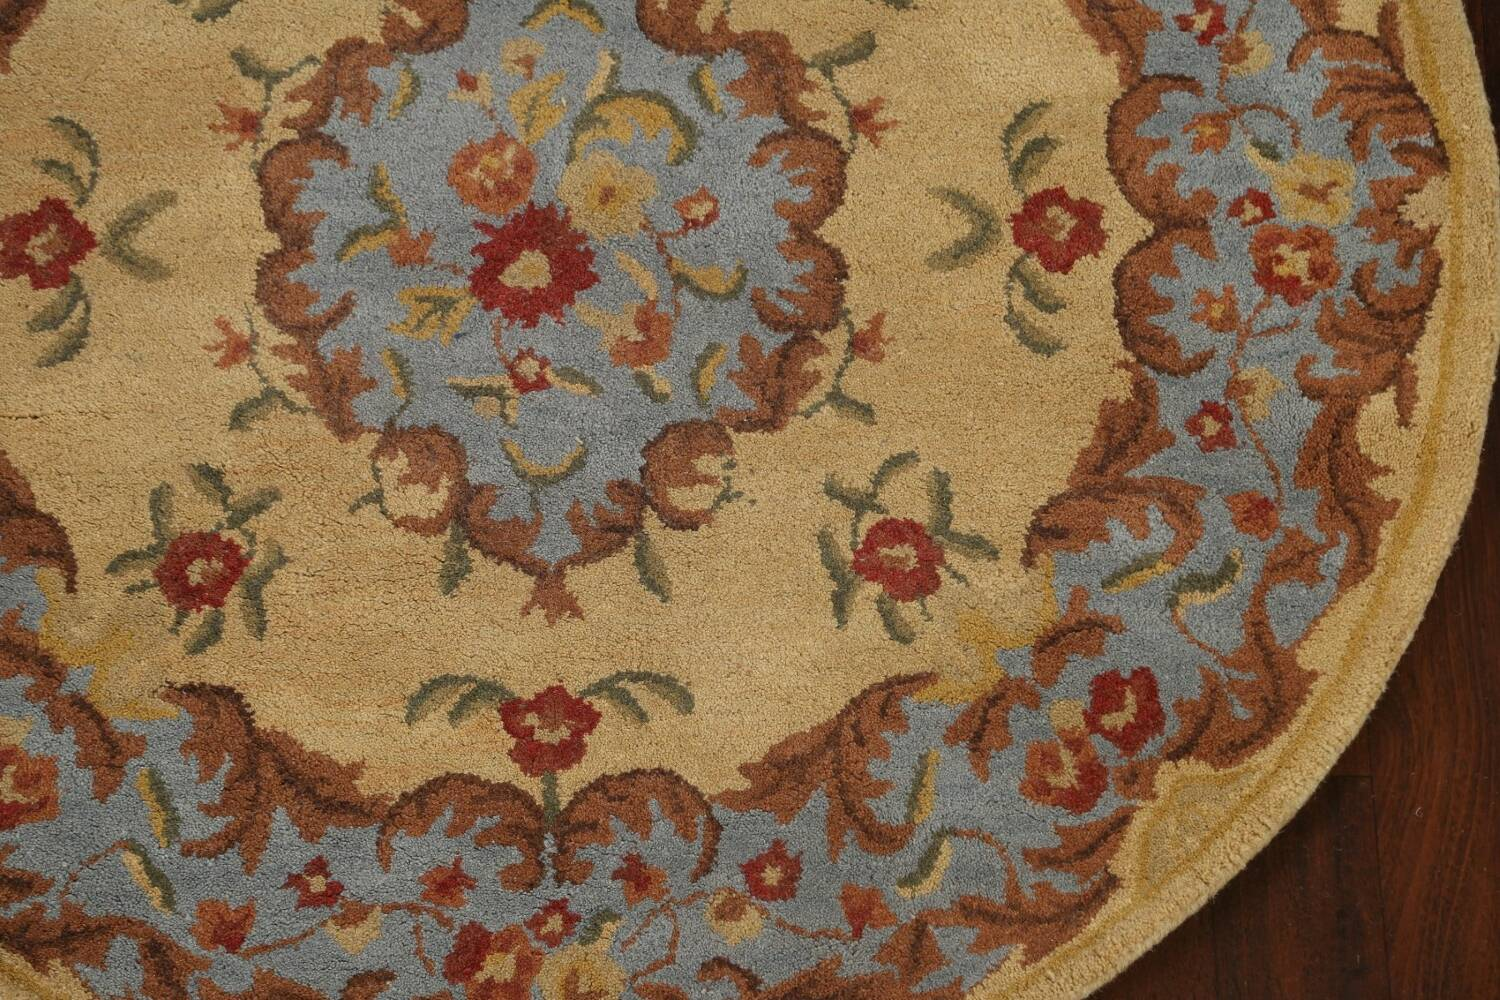 Floral Round Rug 5x5 image 6